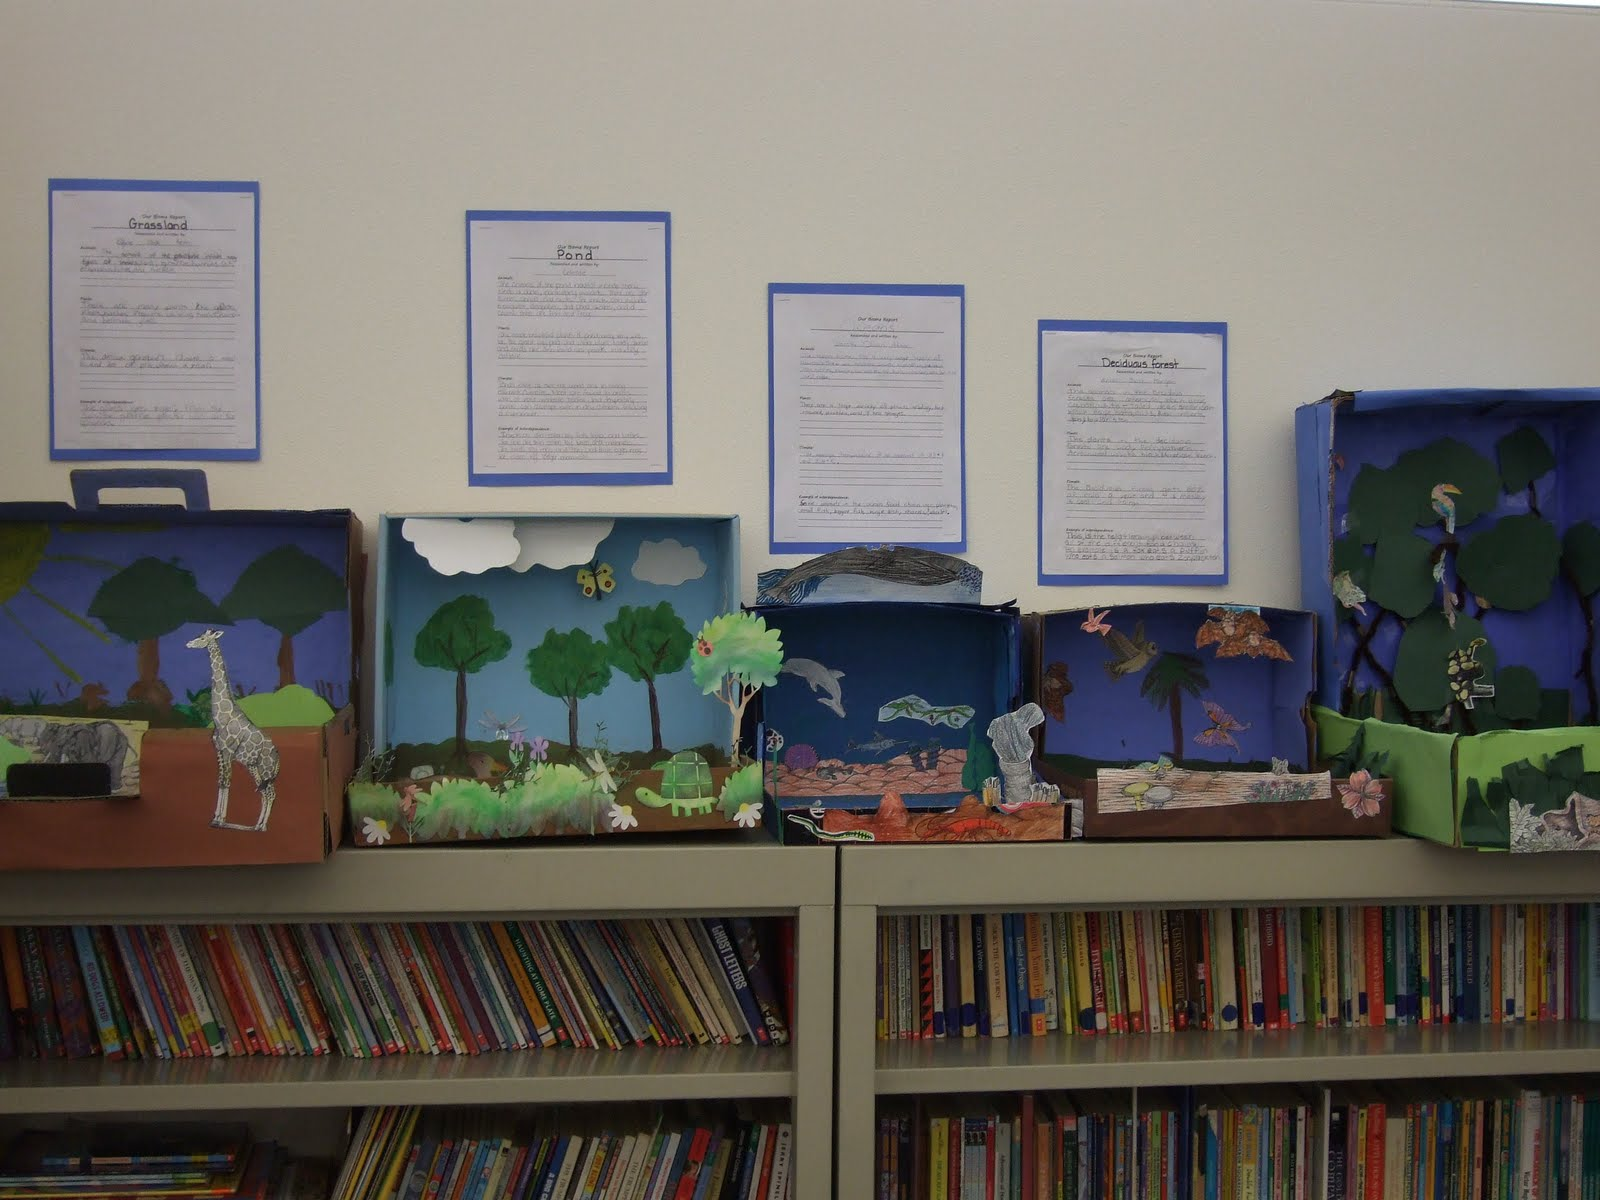 The Inspired Classroom Ecosystem Dioramas